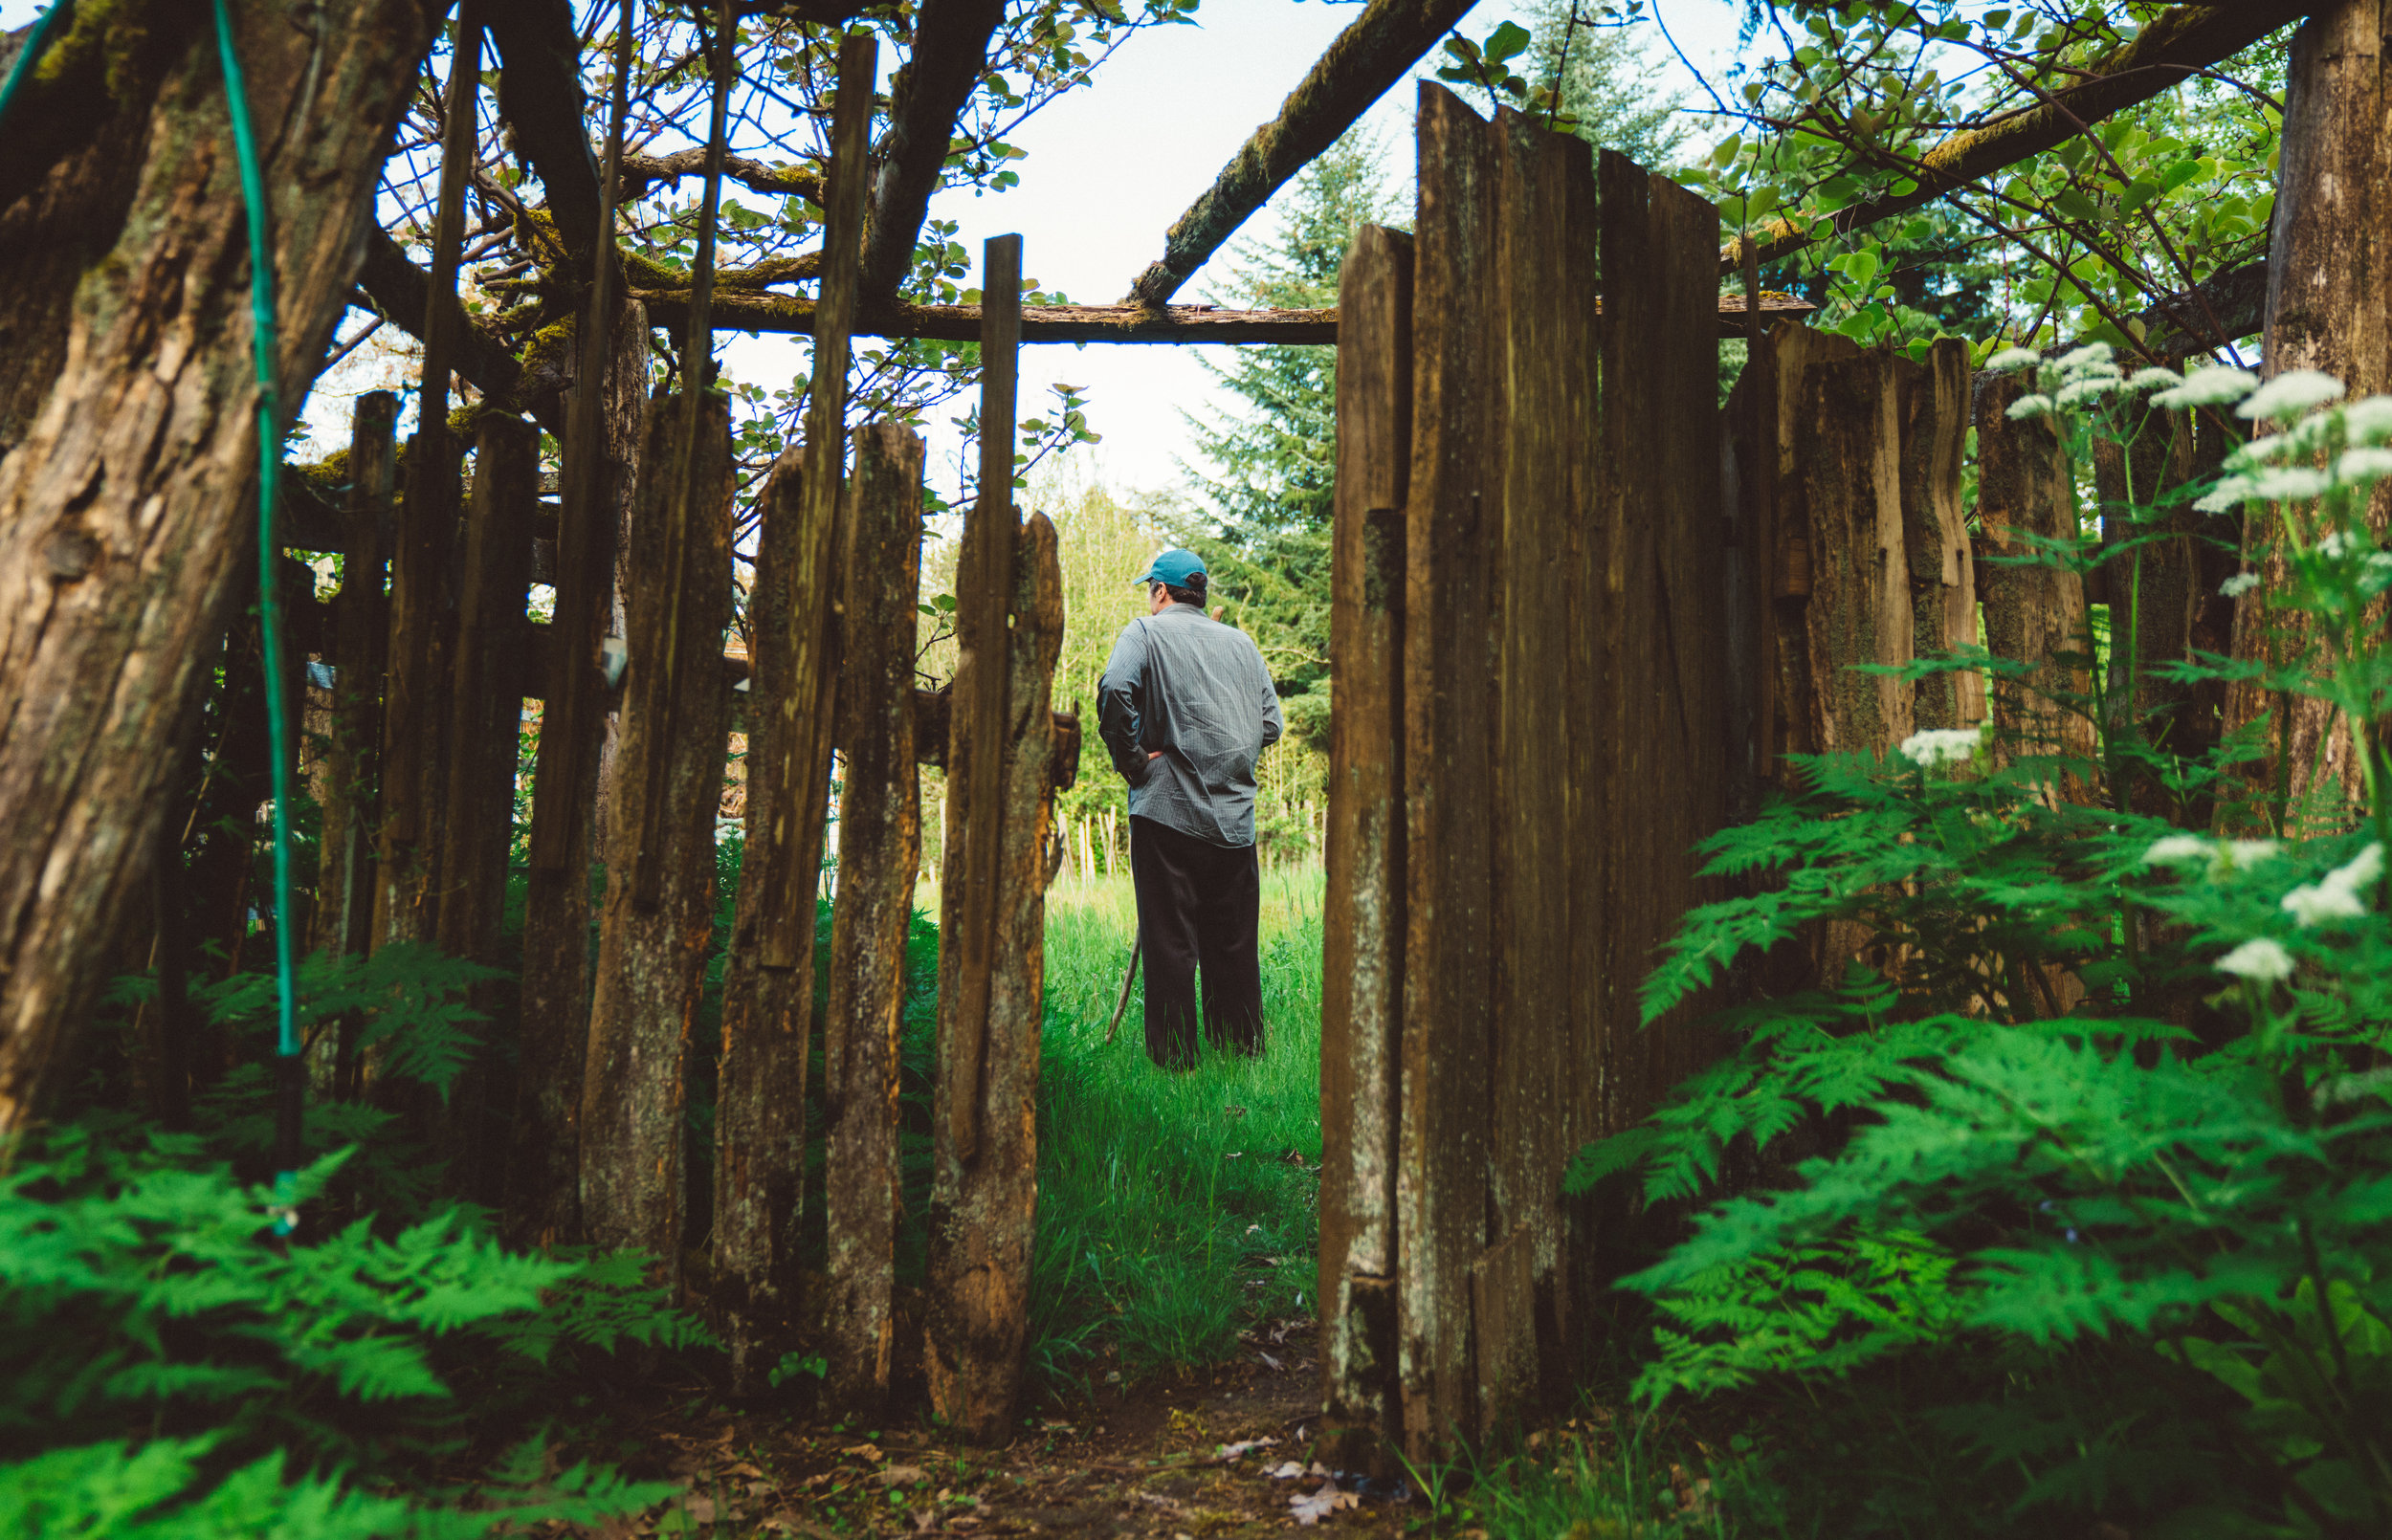 My father through the gate into the back field.